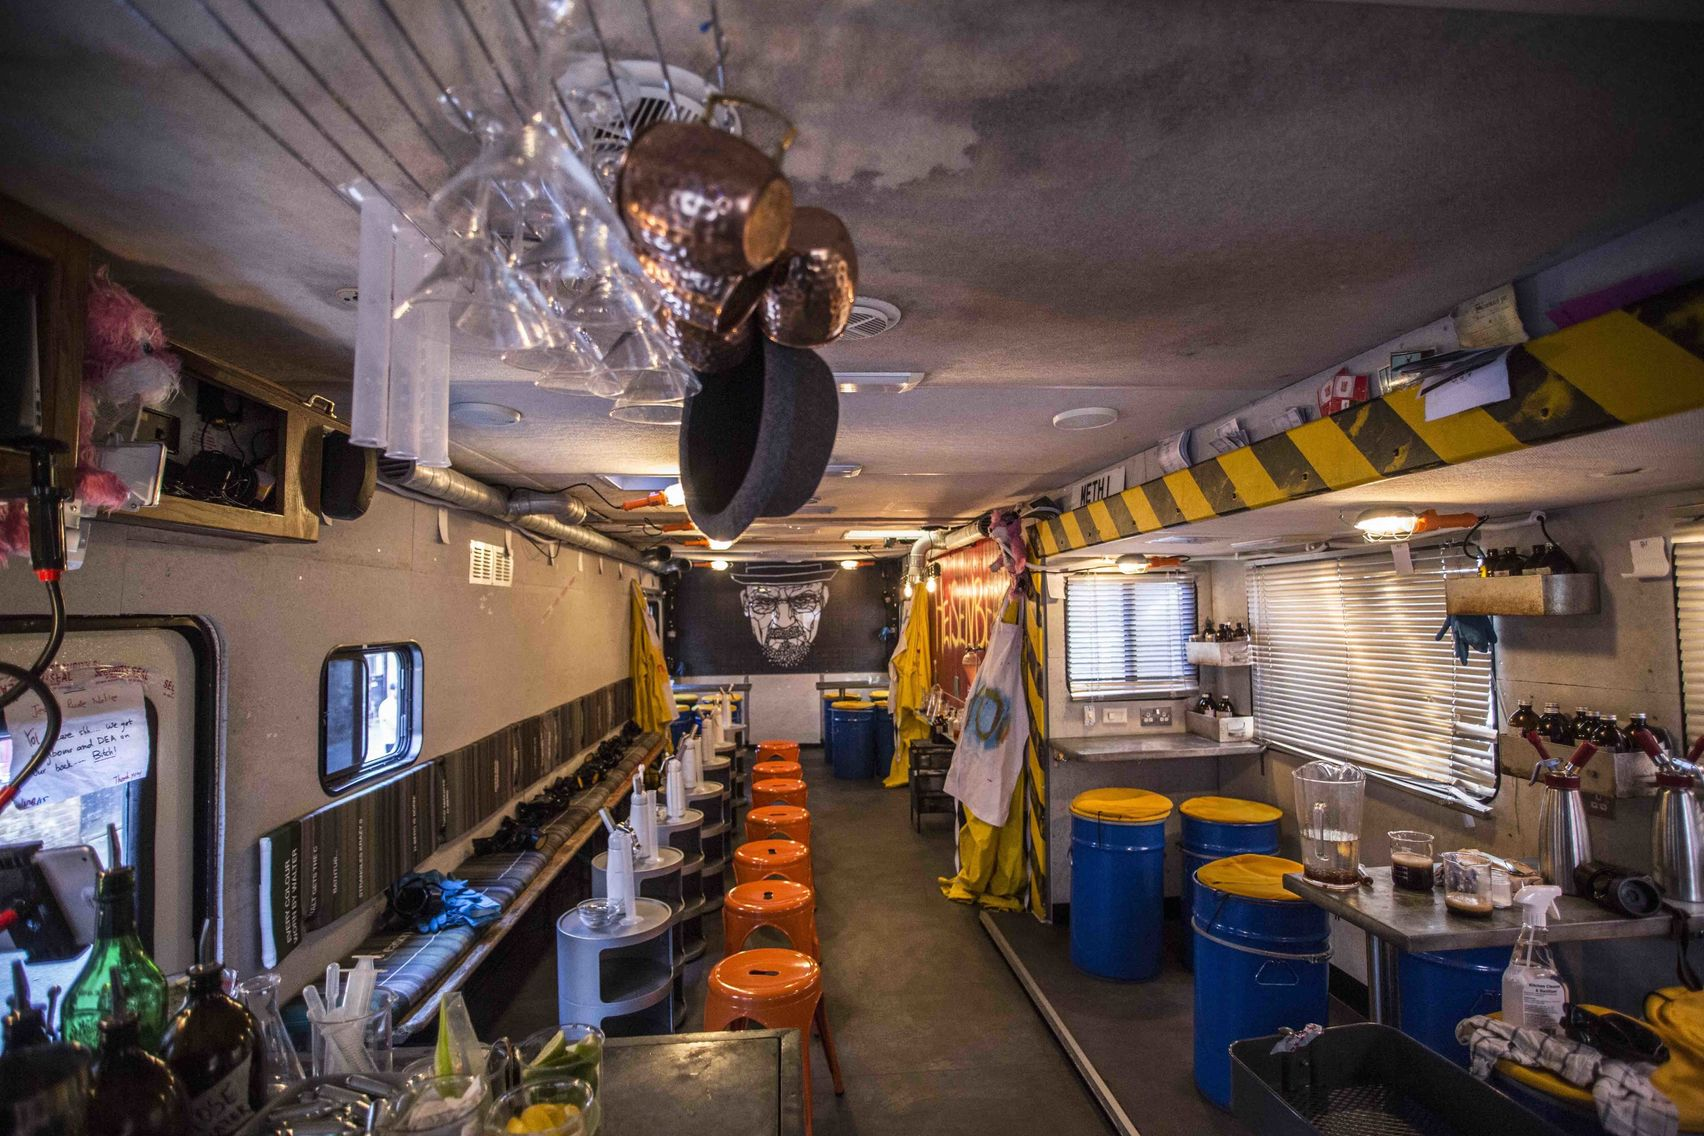 The most unusual party venues London has to offer. The image of the inside of the breaking bad inspired RV. With canisters and yellow and black tape hanging from the walls this is the perfect party venue in London